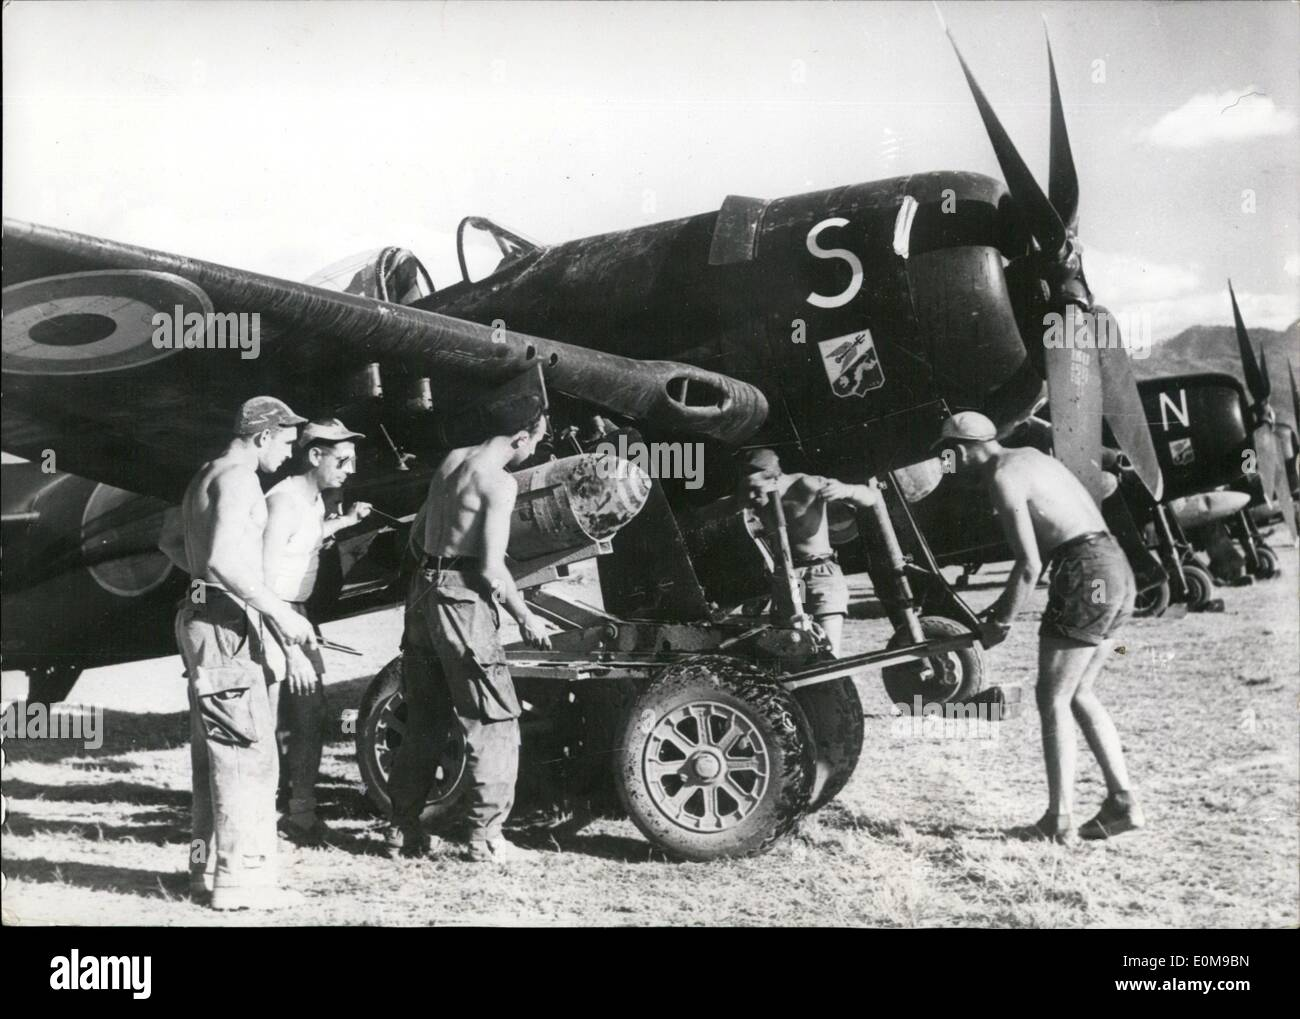 Mar. 03, 1954 - War in Indo-China: French light bombers about to take off from the Dien Bien Phu Aerodrome. Heavy fighting is going on that area. - Stock Image